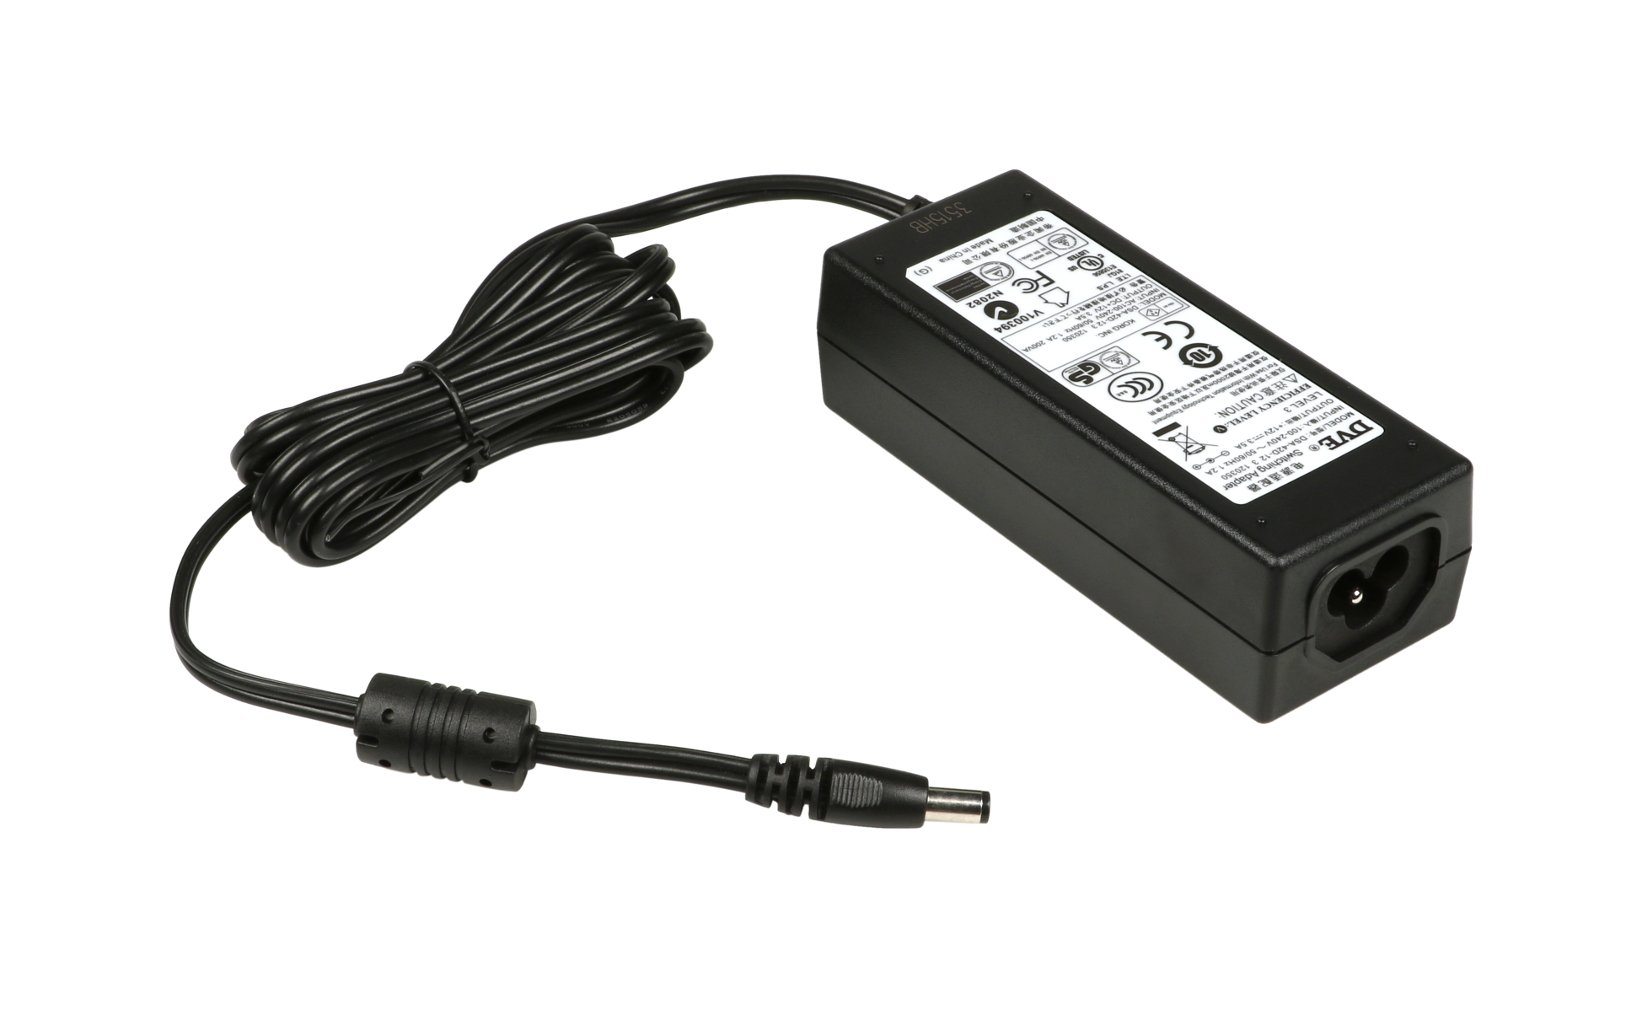 AC Adaptor for Pa50, Pa50SD, and SP-250